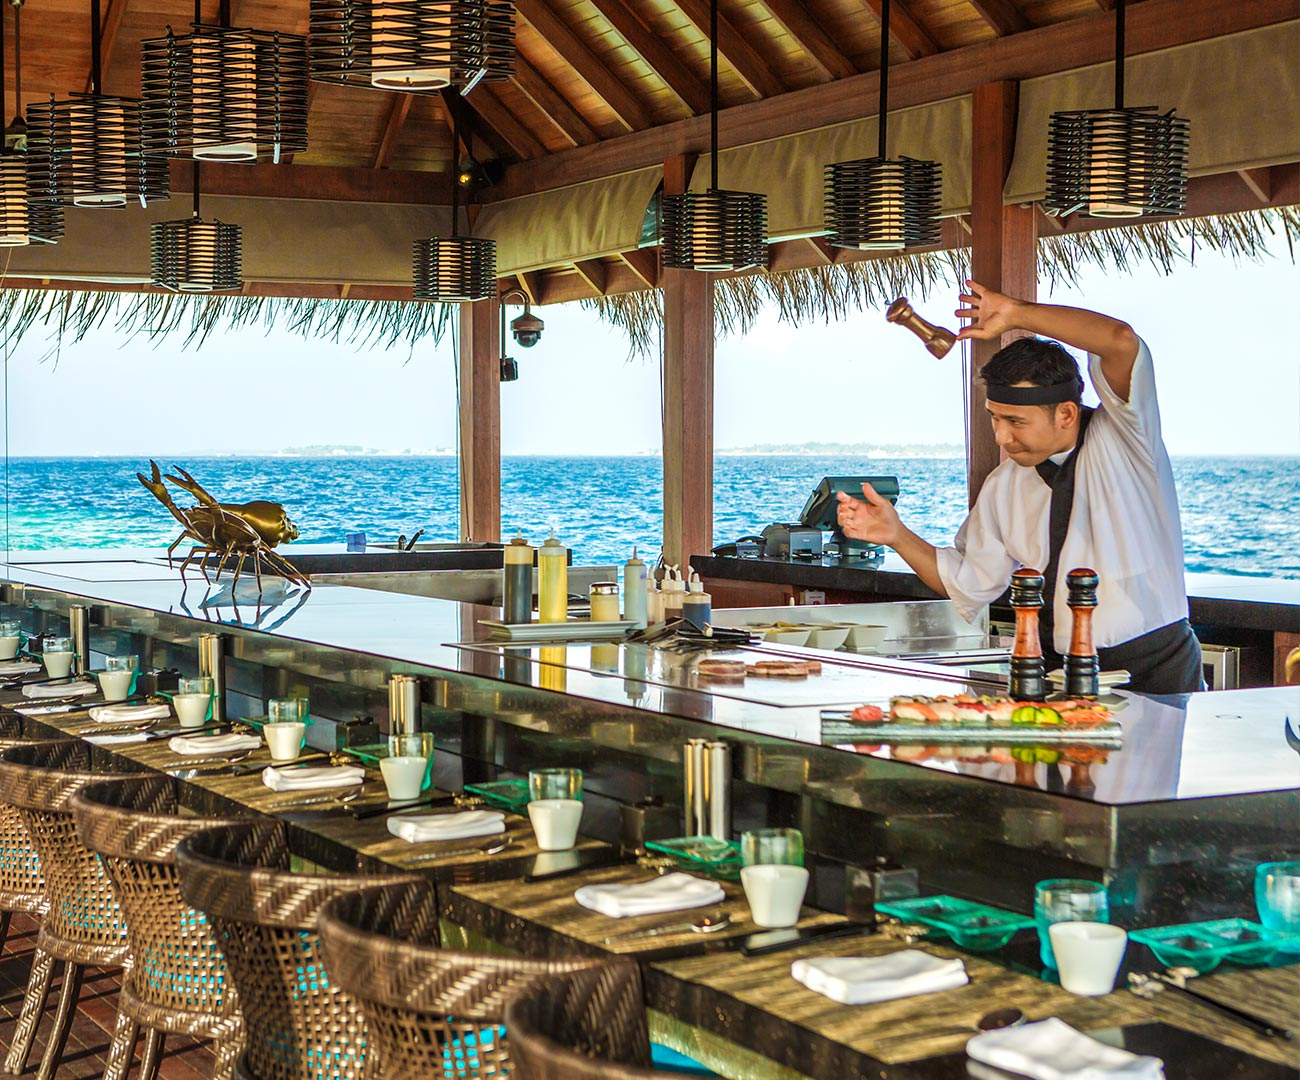 Kurumba Maldives - Japanese Restaurant Image - Maldives Resort